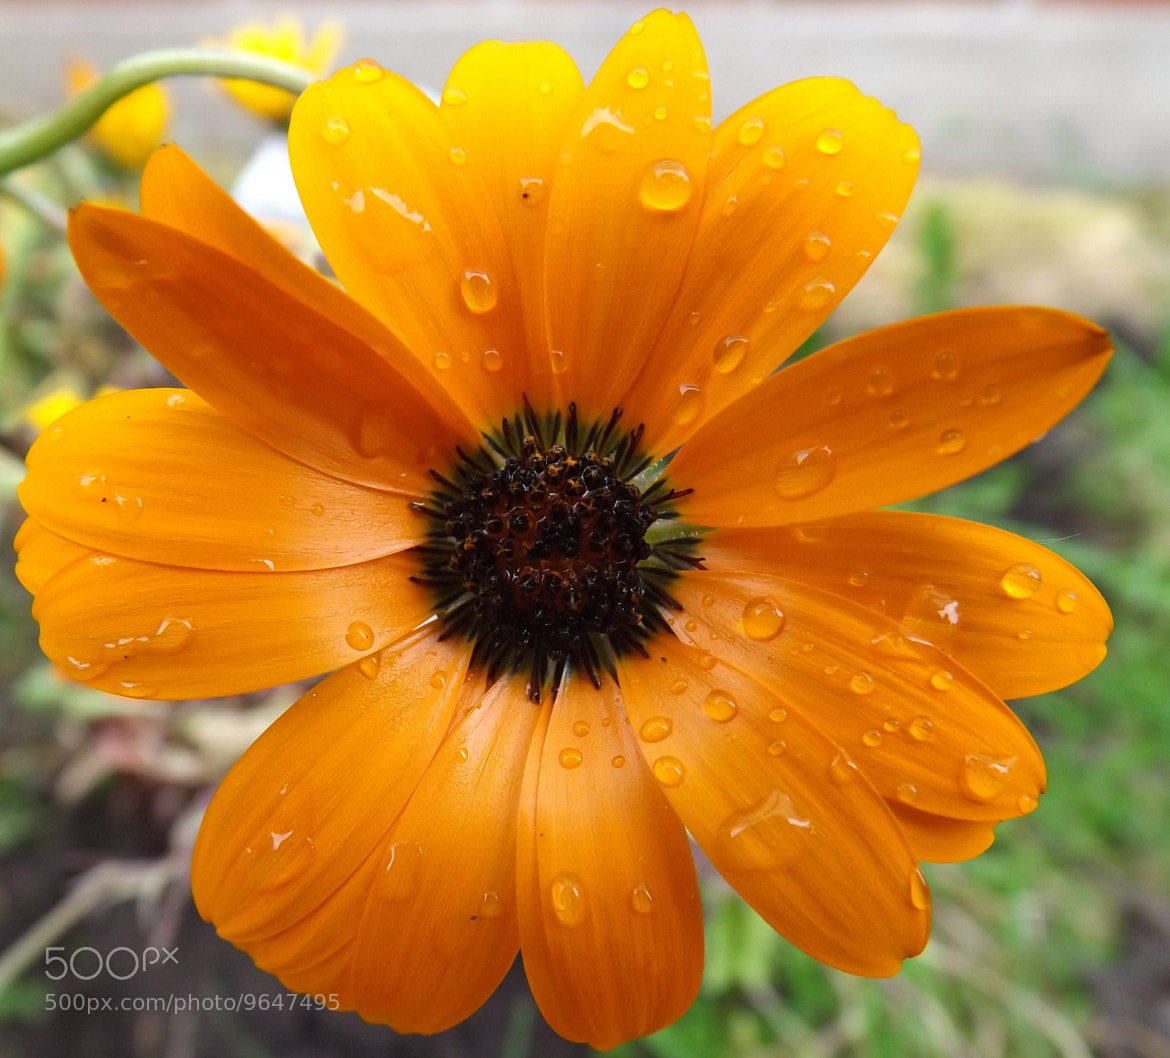 Photograph Orange flower by Max Rigden on 500px